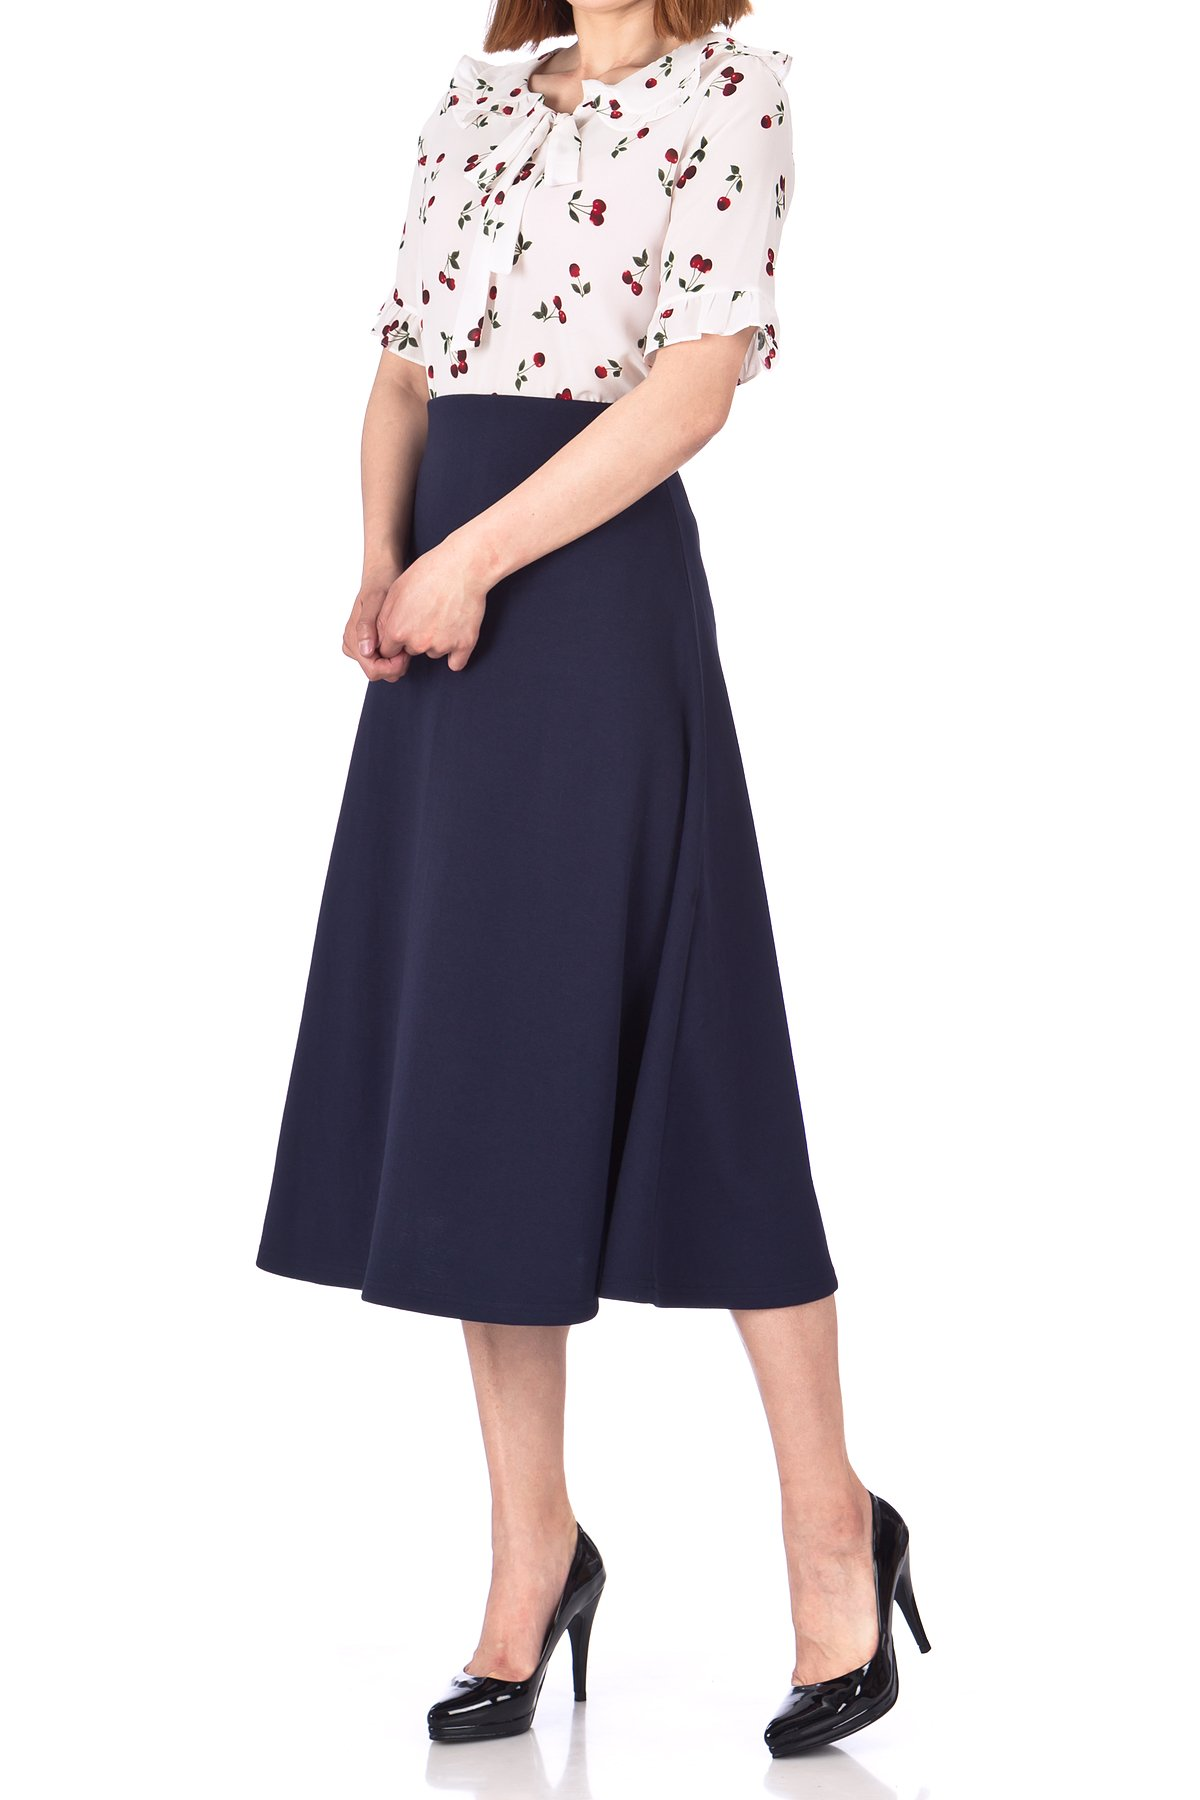 Elastic Waist A line Flared Long Skirt Navy 03